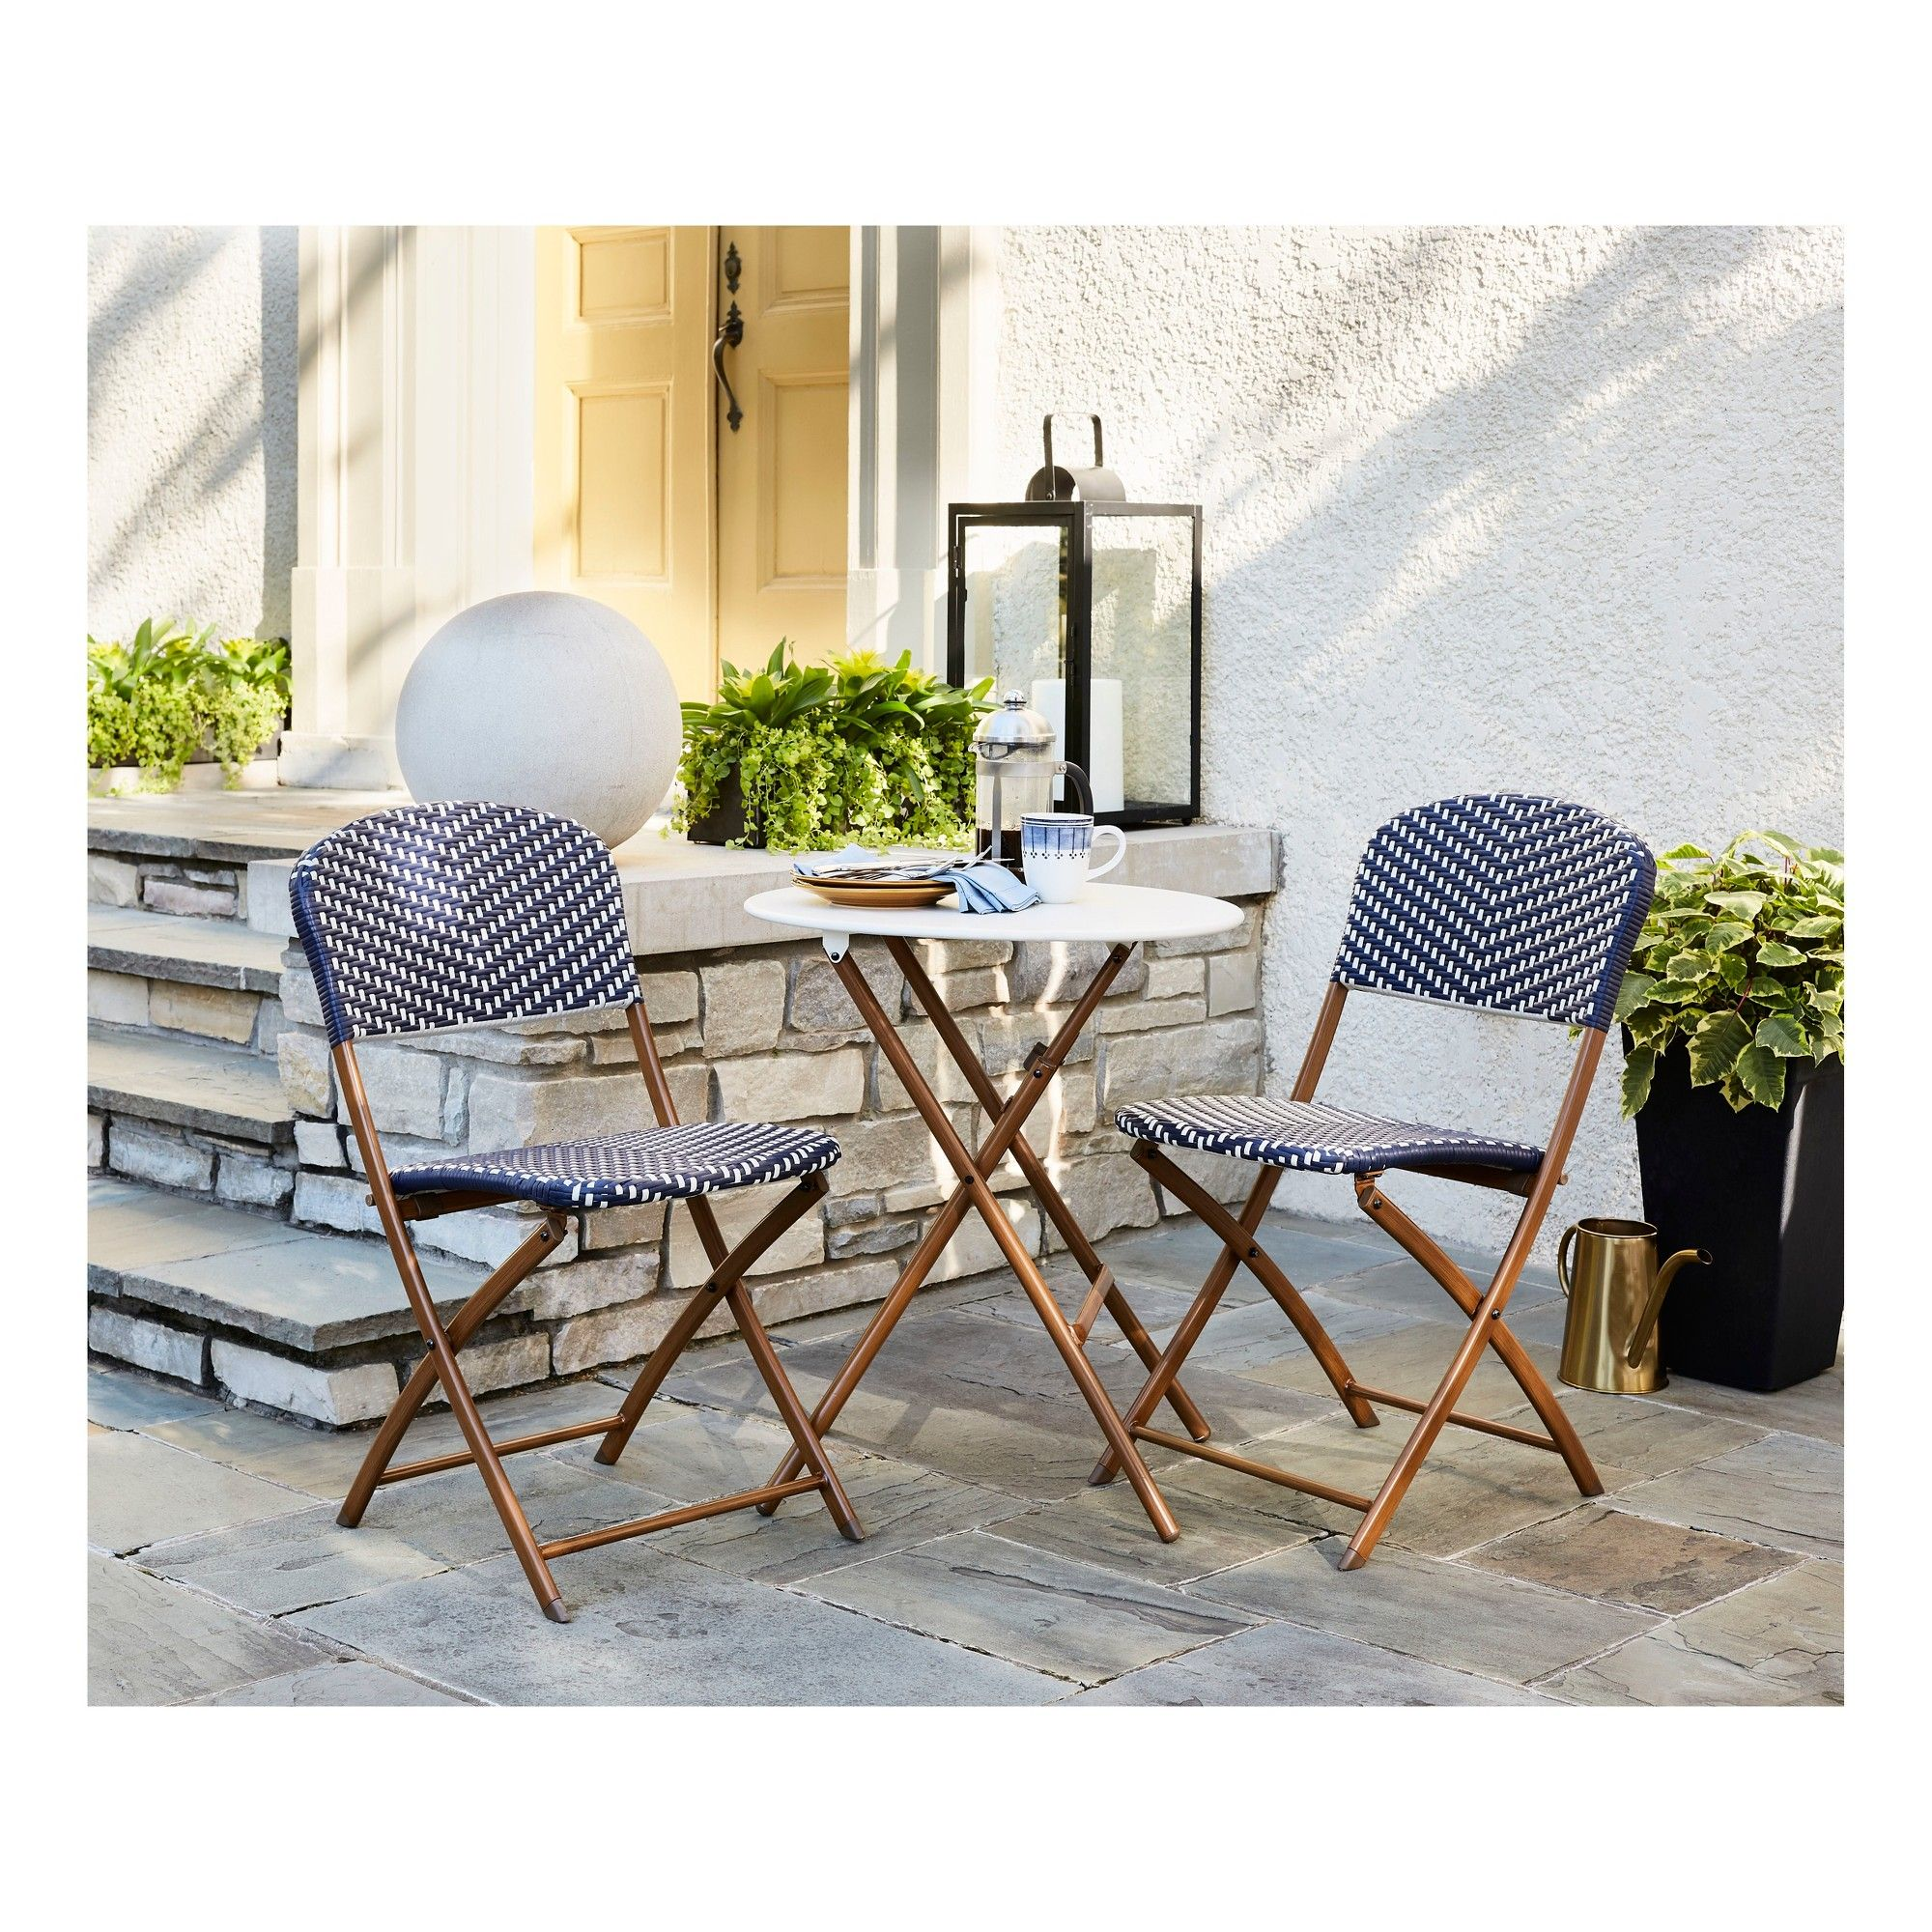 Miraculous French Caf 3Pc Wicker Folding Patio Bistro Set Navy White Gmtry Best Dining Table And Chair Ideas Images Gmtryco